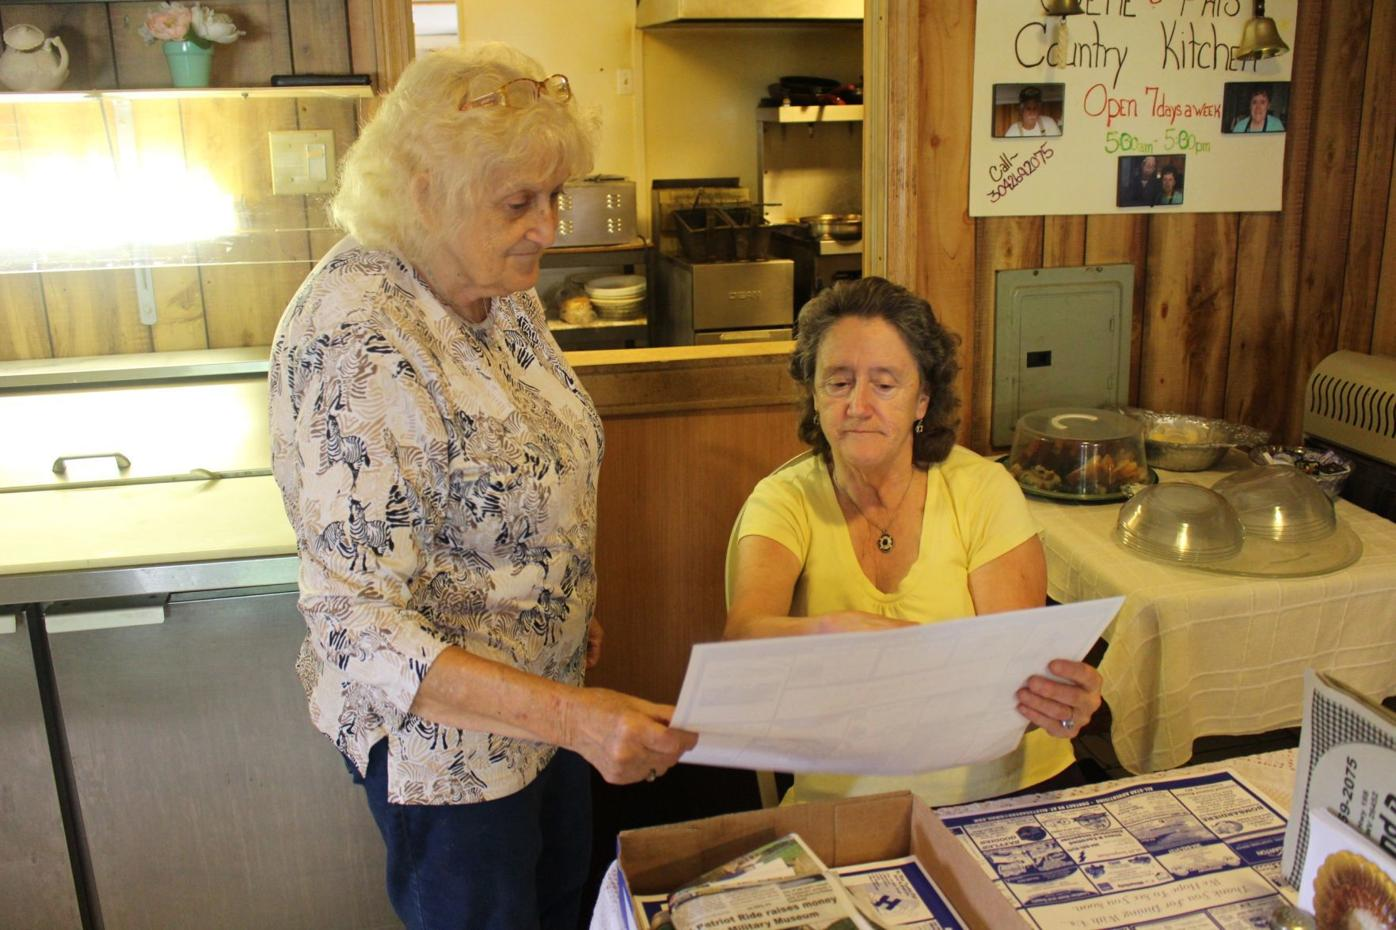 Gene And Pat S Country Kitchen Combines Home Cooked Meals With Down Home Company News Wvnews Com